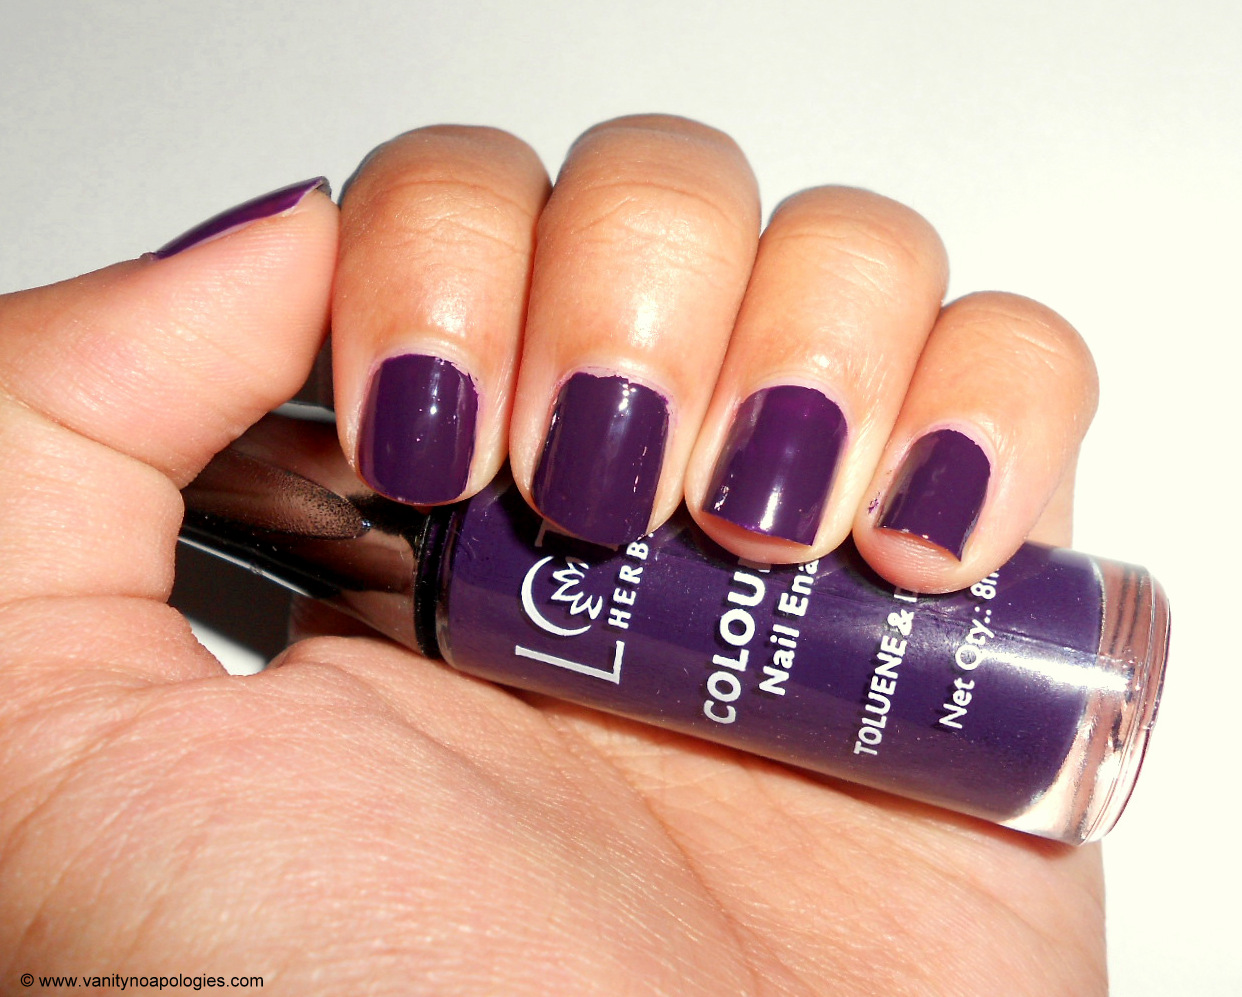 lotus-herbals-colour-dew-nail-emamel-plum-delight-review-swatches ...